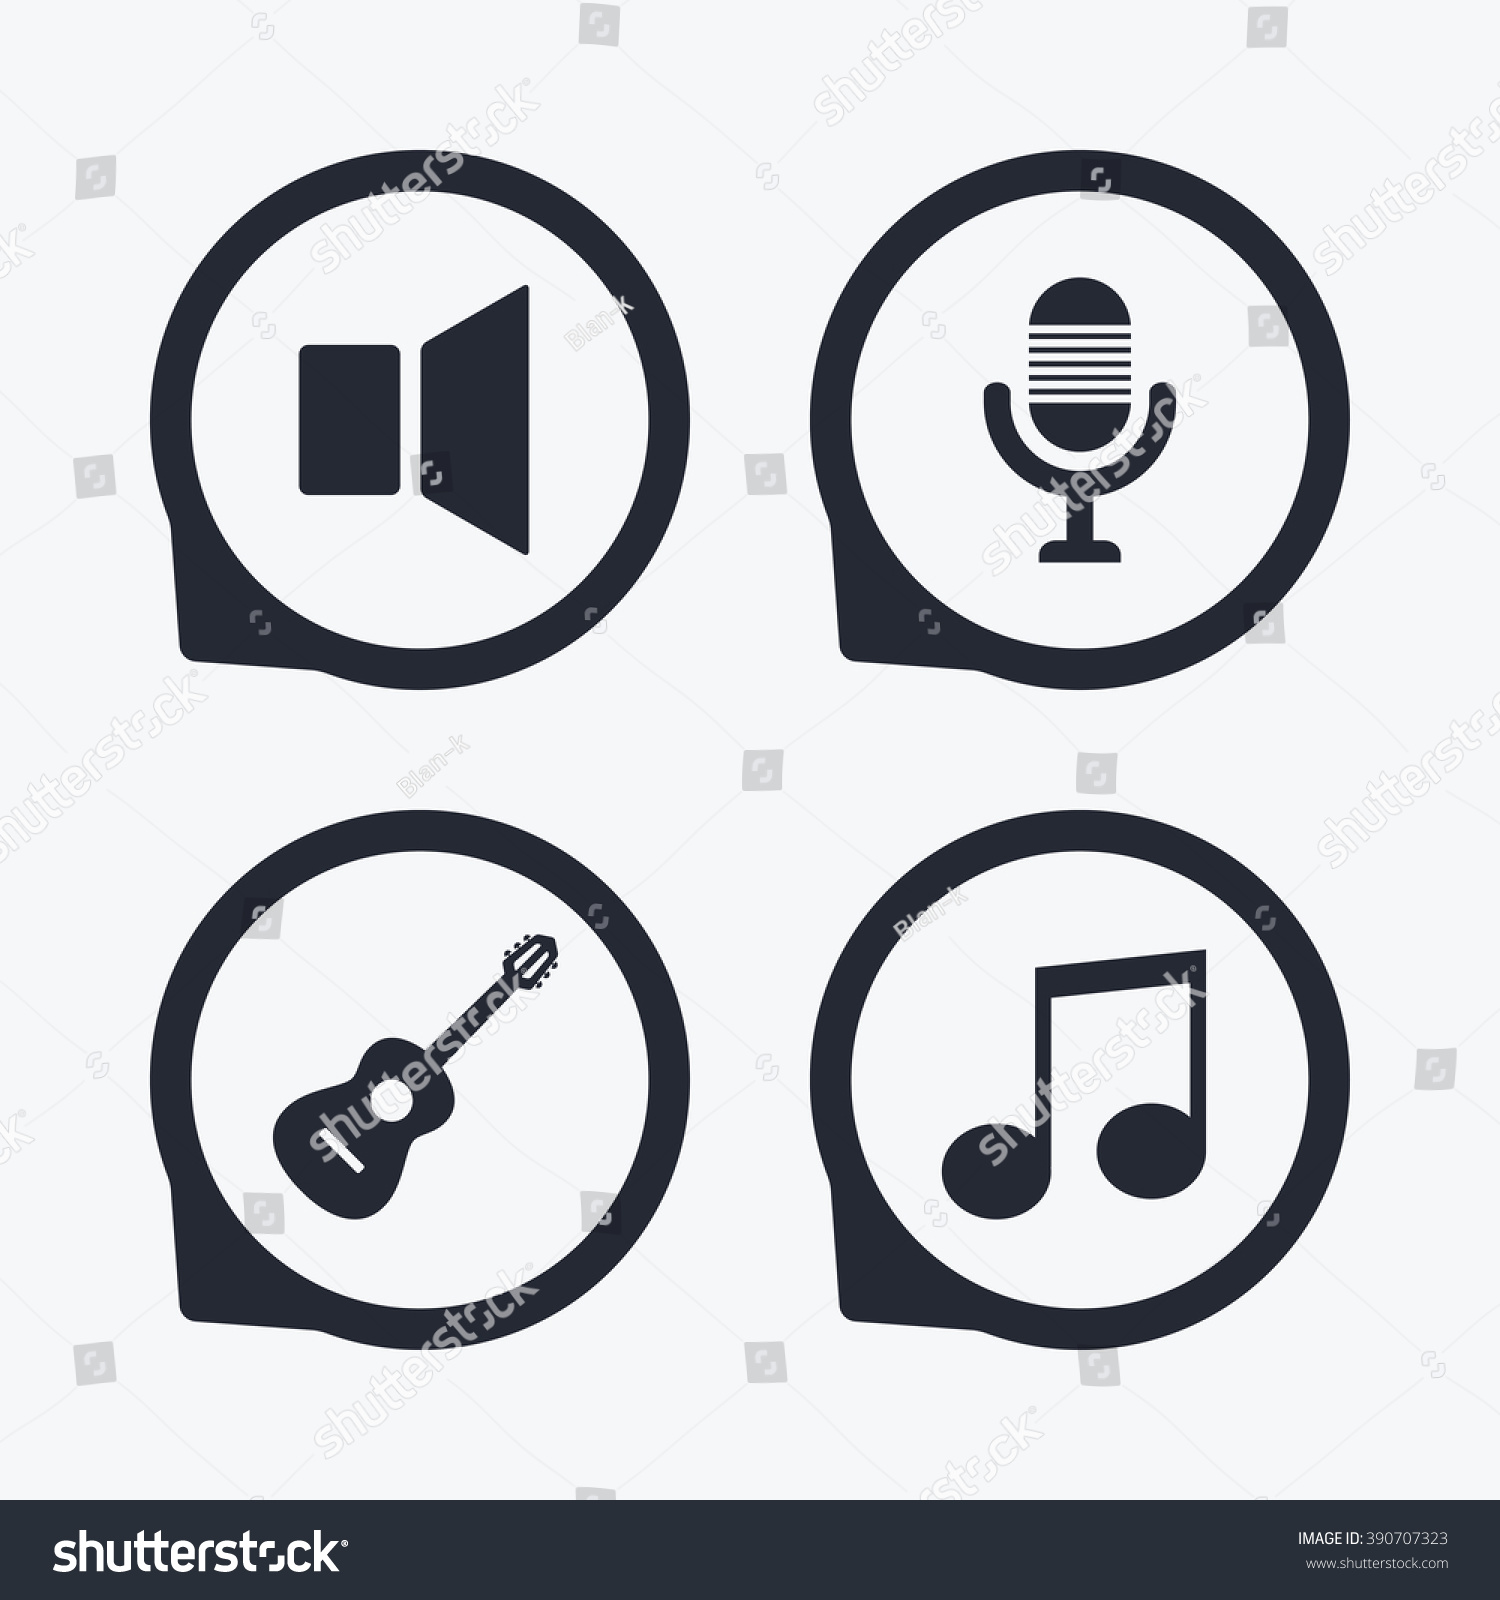 Musical elements icons microphone sound speaker stock illustration musical elements icons microphone and sound speaker symbols music note and acoustic guitar signs buycottarizona